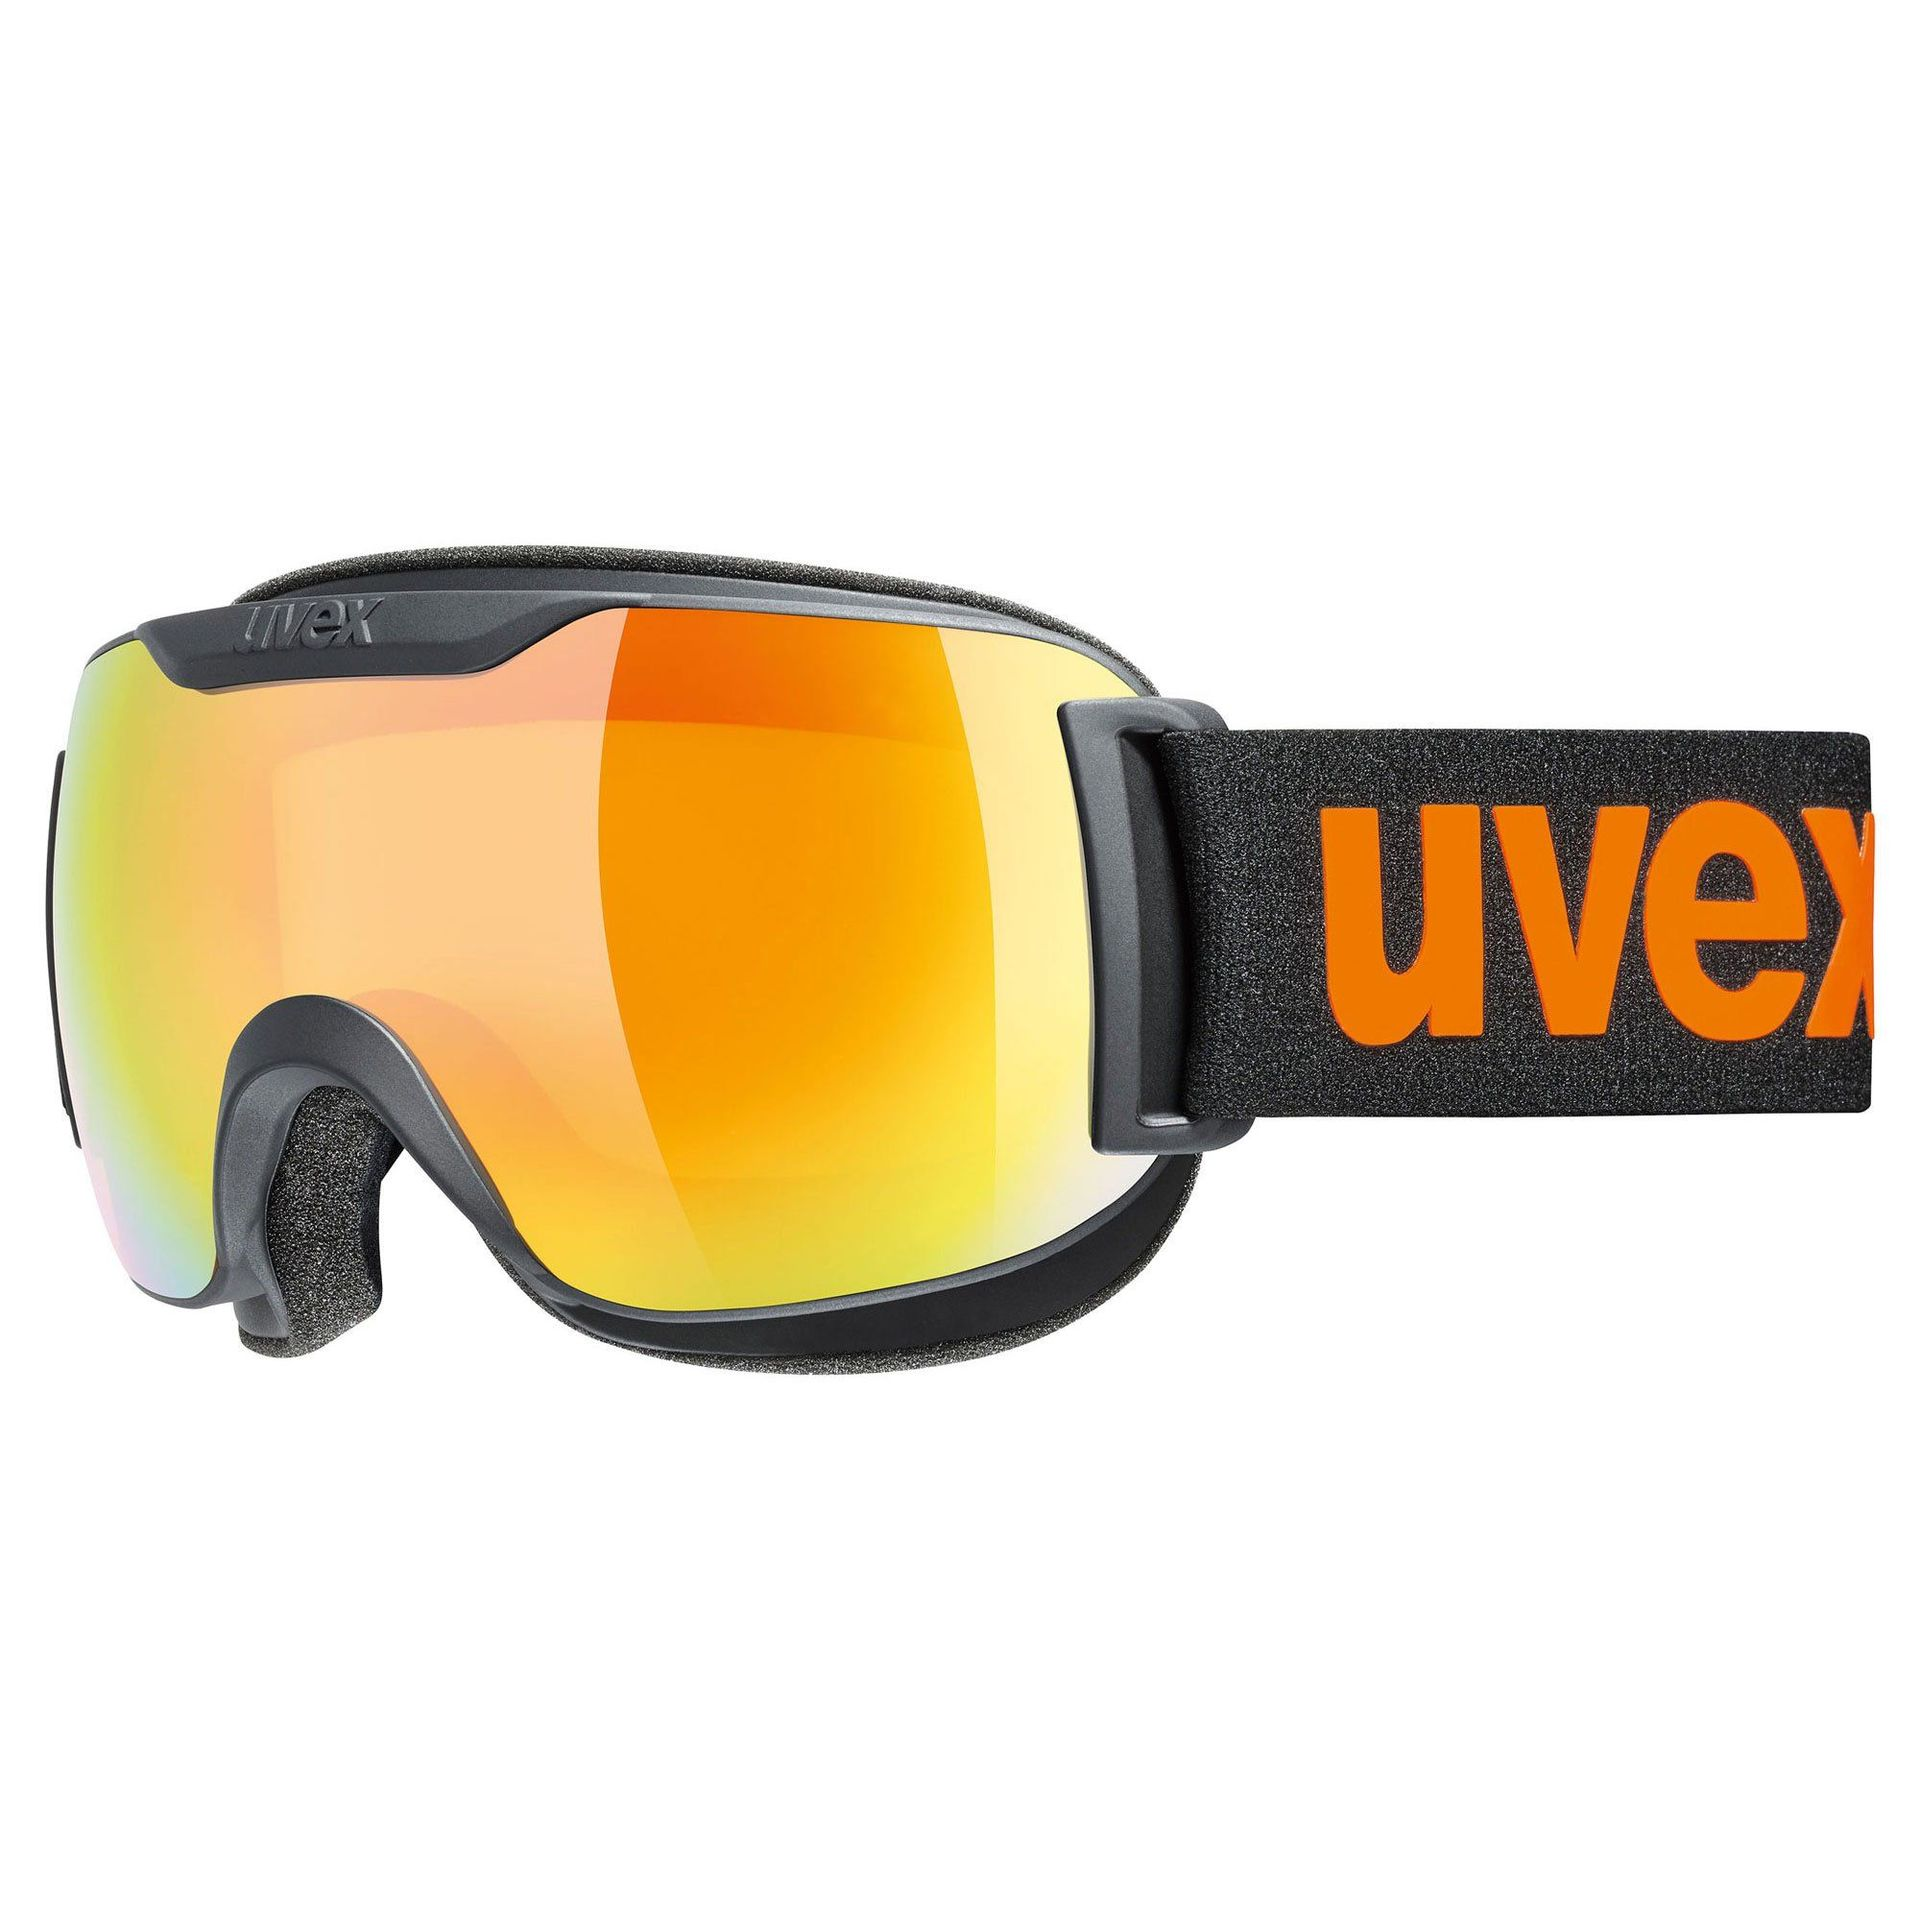 GOGLE UVEX DOWNHILL 2000 CV BLACK MAT ORANGE|MIRROR ORANGE COLORVISION YELLOW 55|0|117|2530